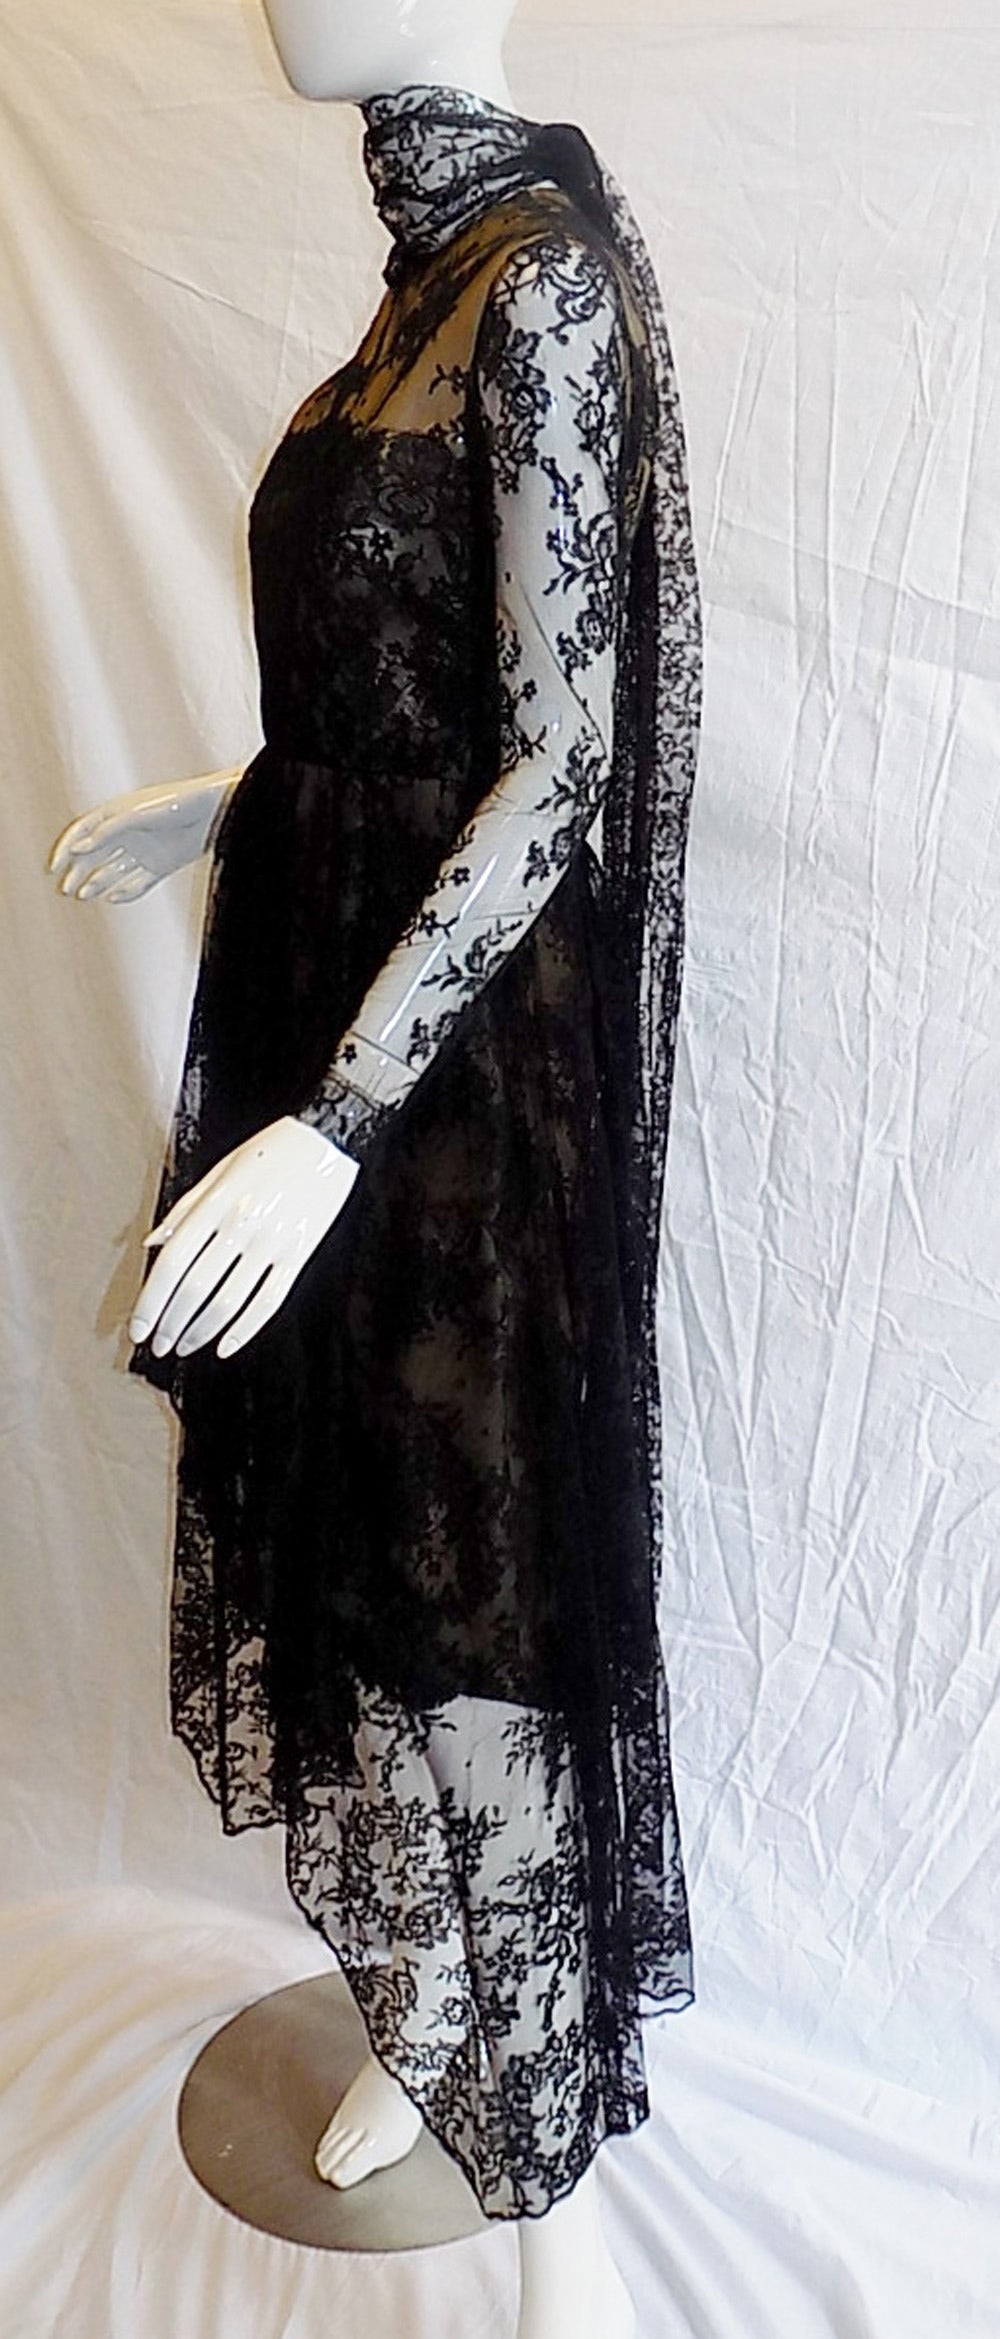 1980 Breathtatking Bill Blass Lace Dress   Rare and Collectable ! For Sale 2